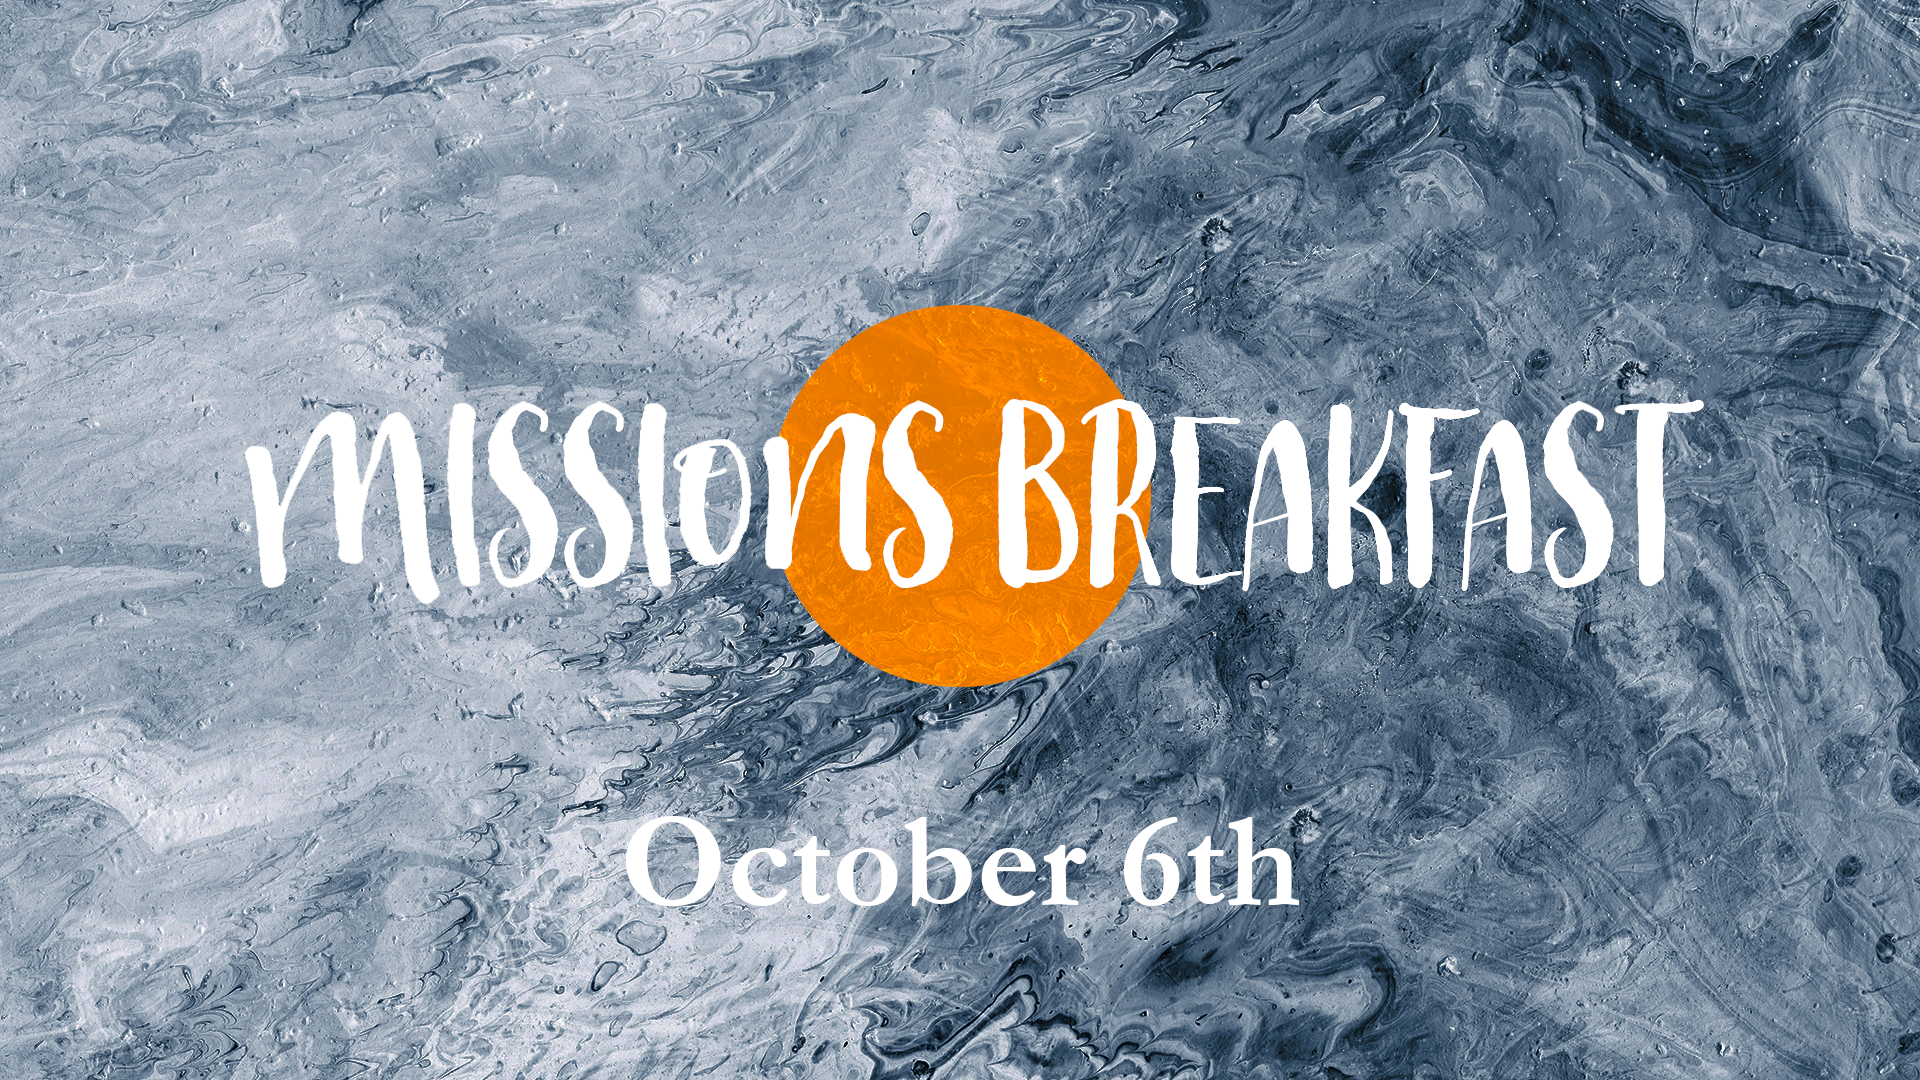 mission breakfast October 6th.png